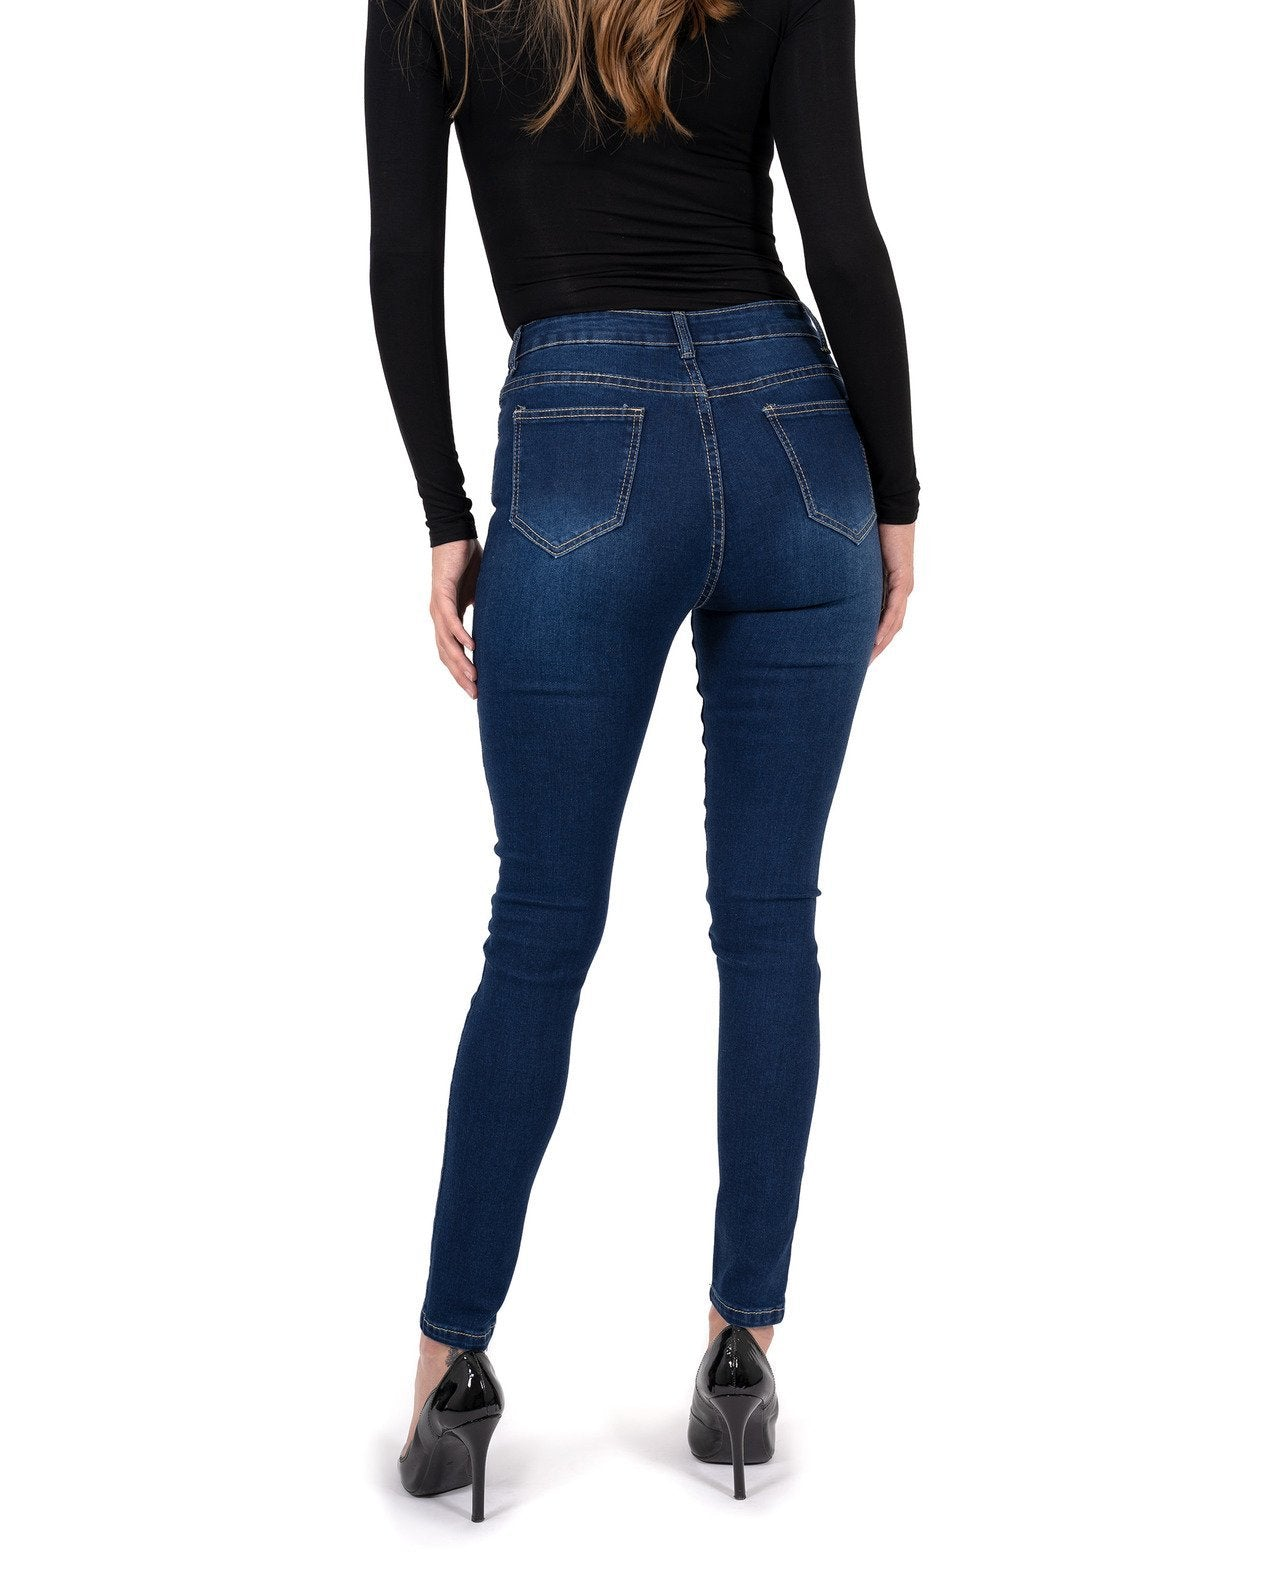 Alexis High Waisted Skinny Jeans